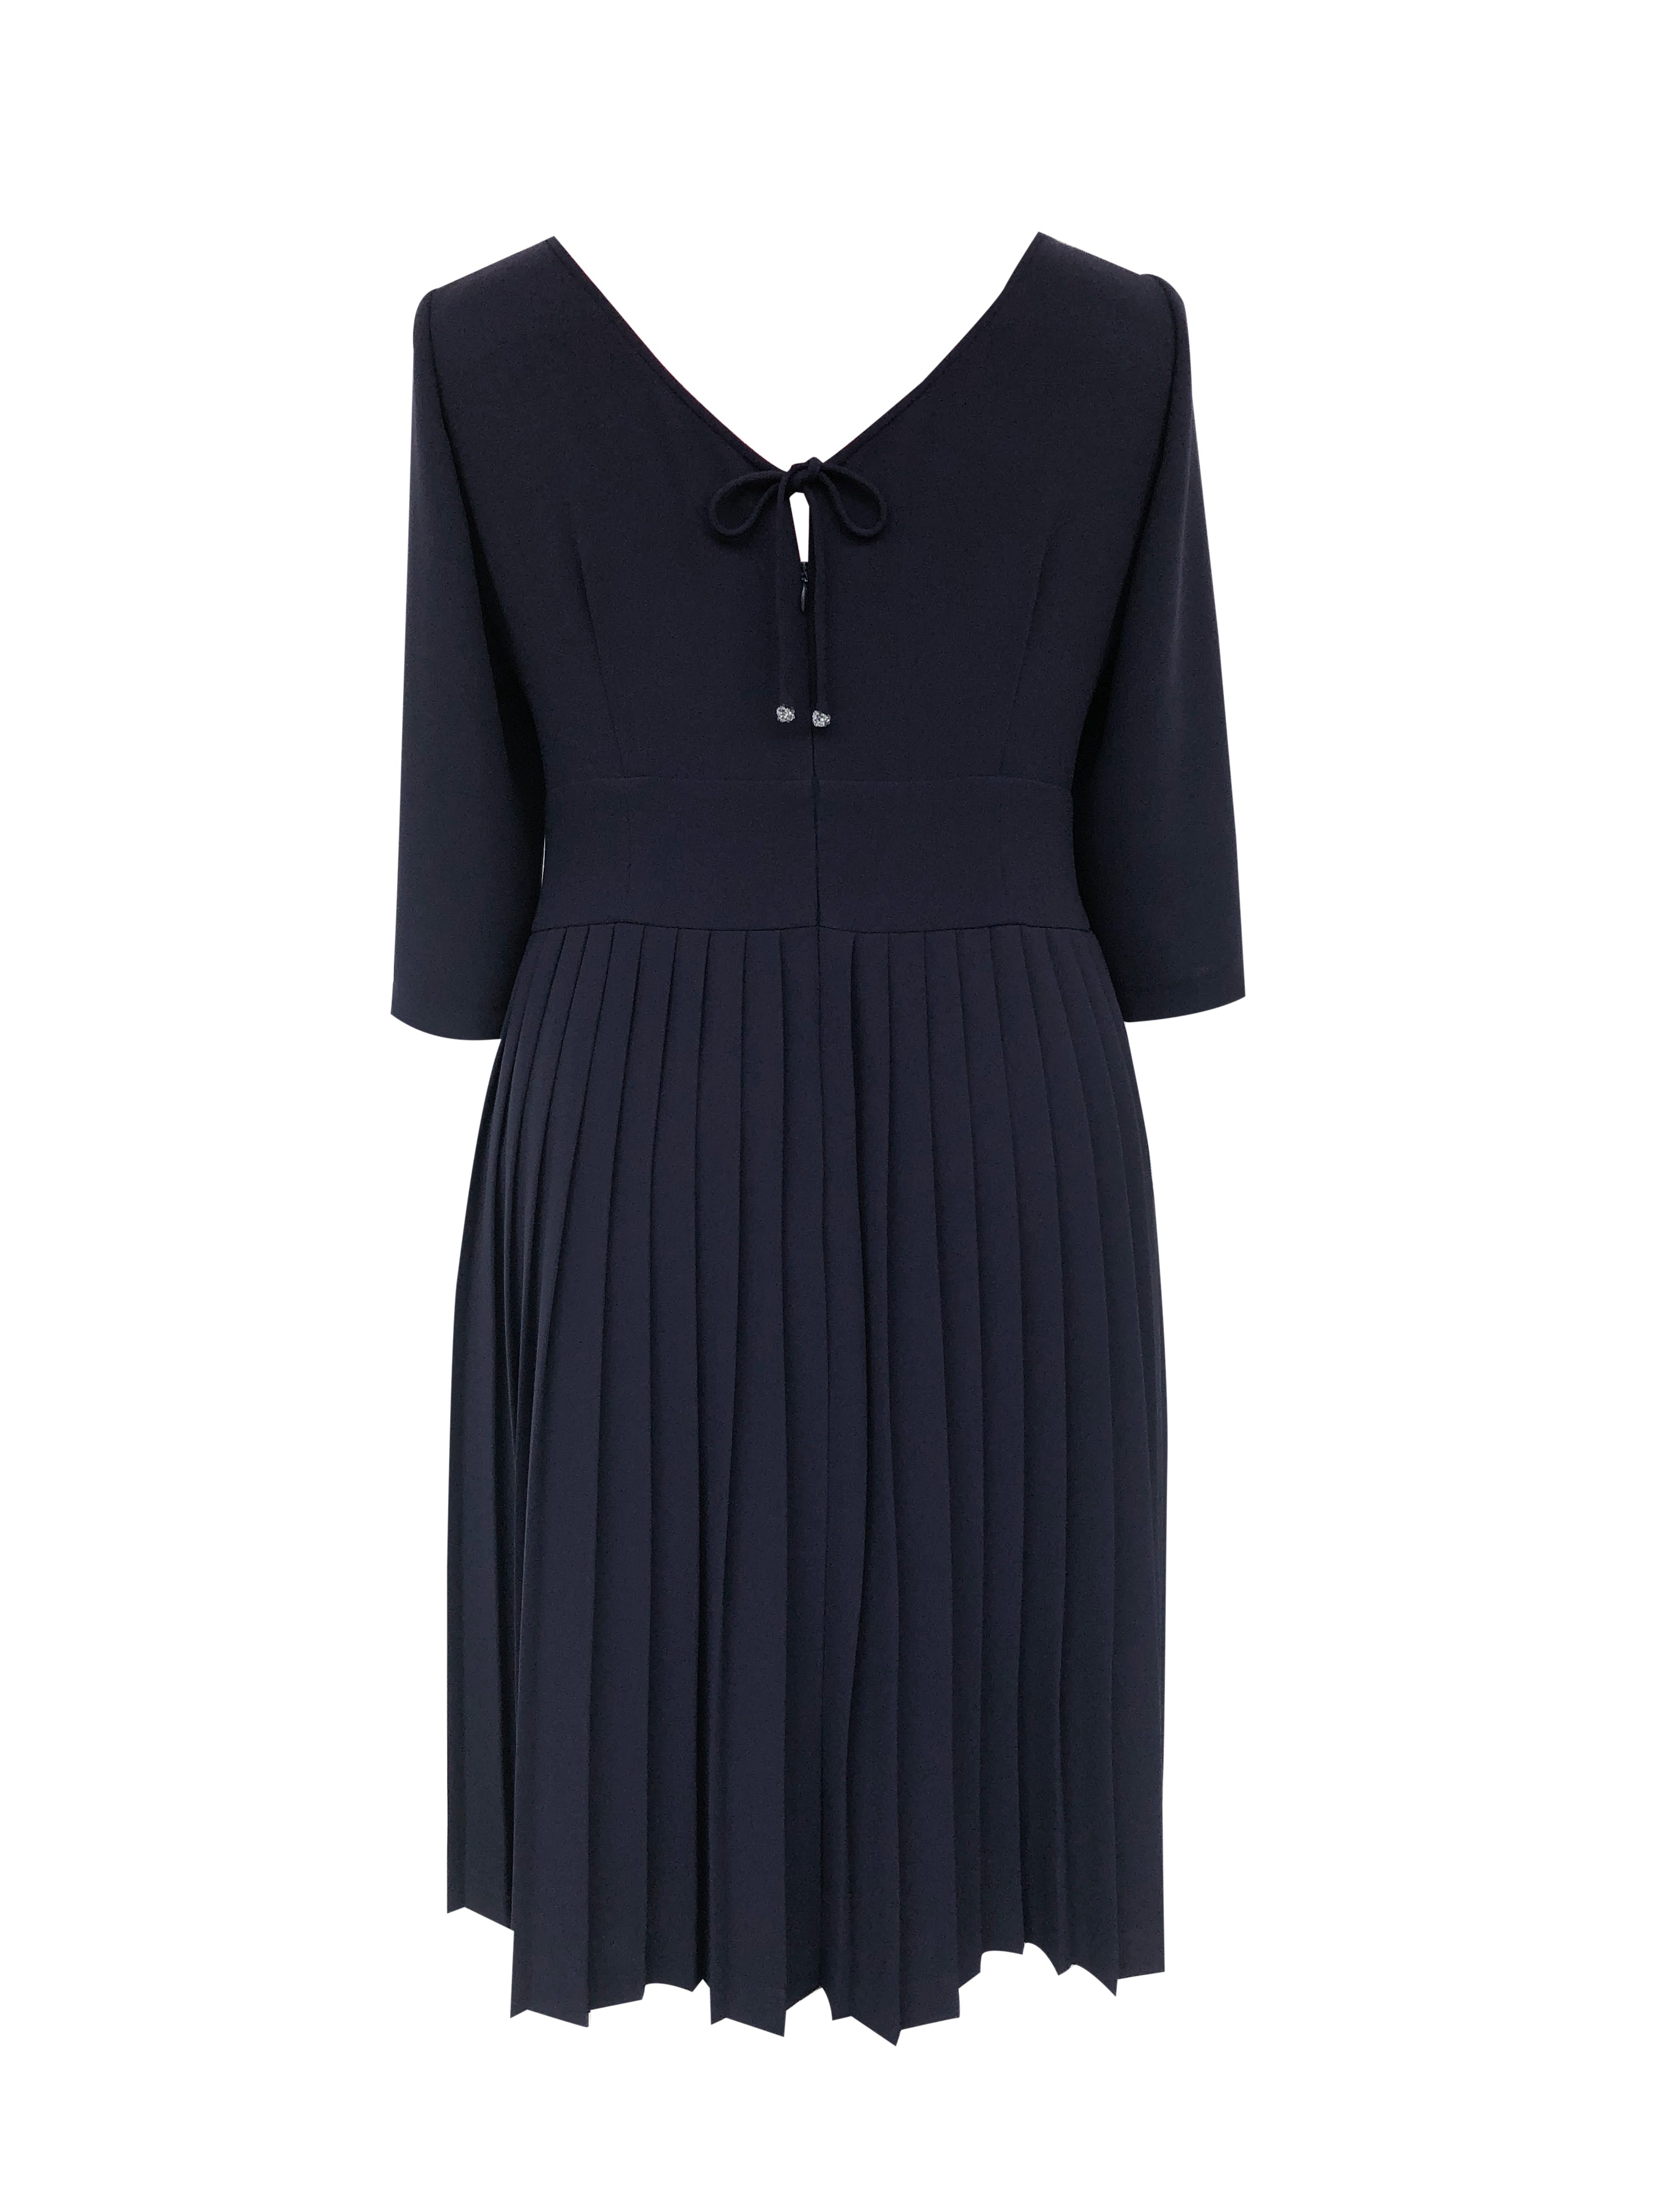 #LilliJahiloPreLoved Kate Pleated Navy Blue Cocktail Dress